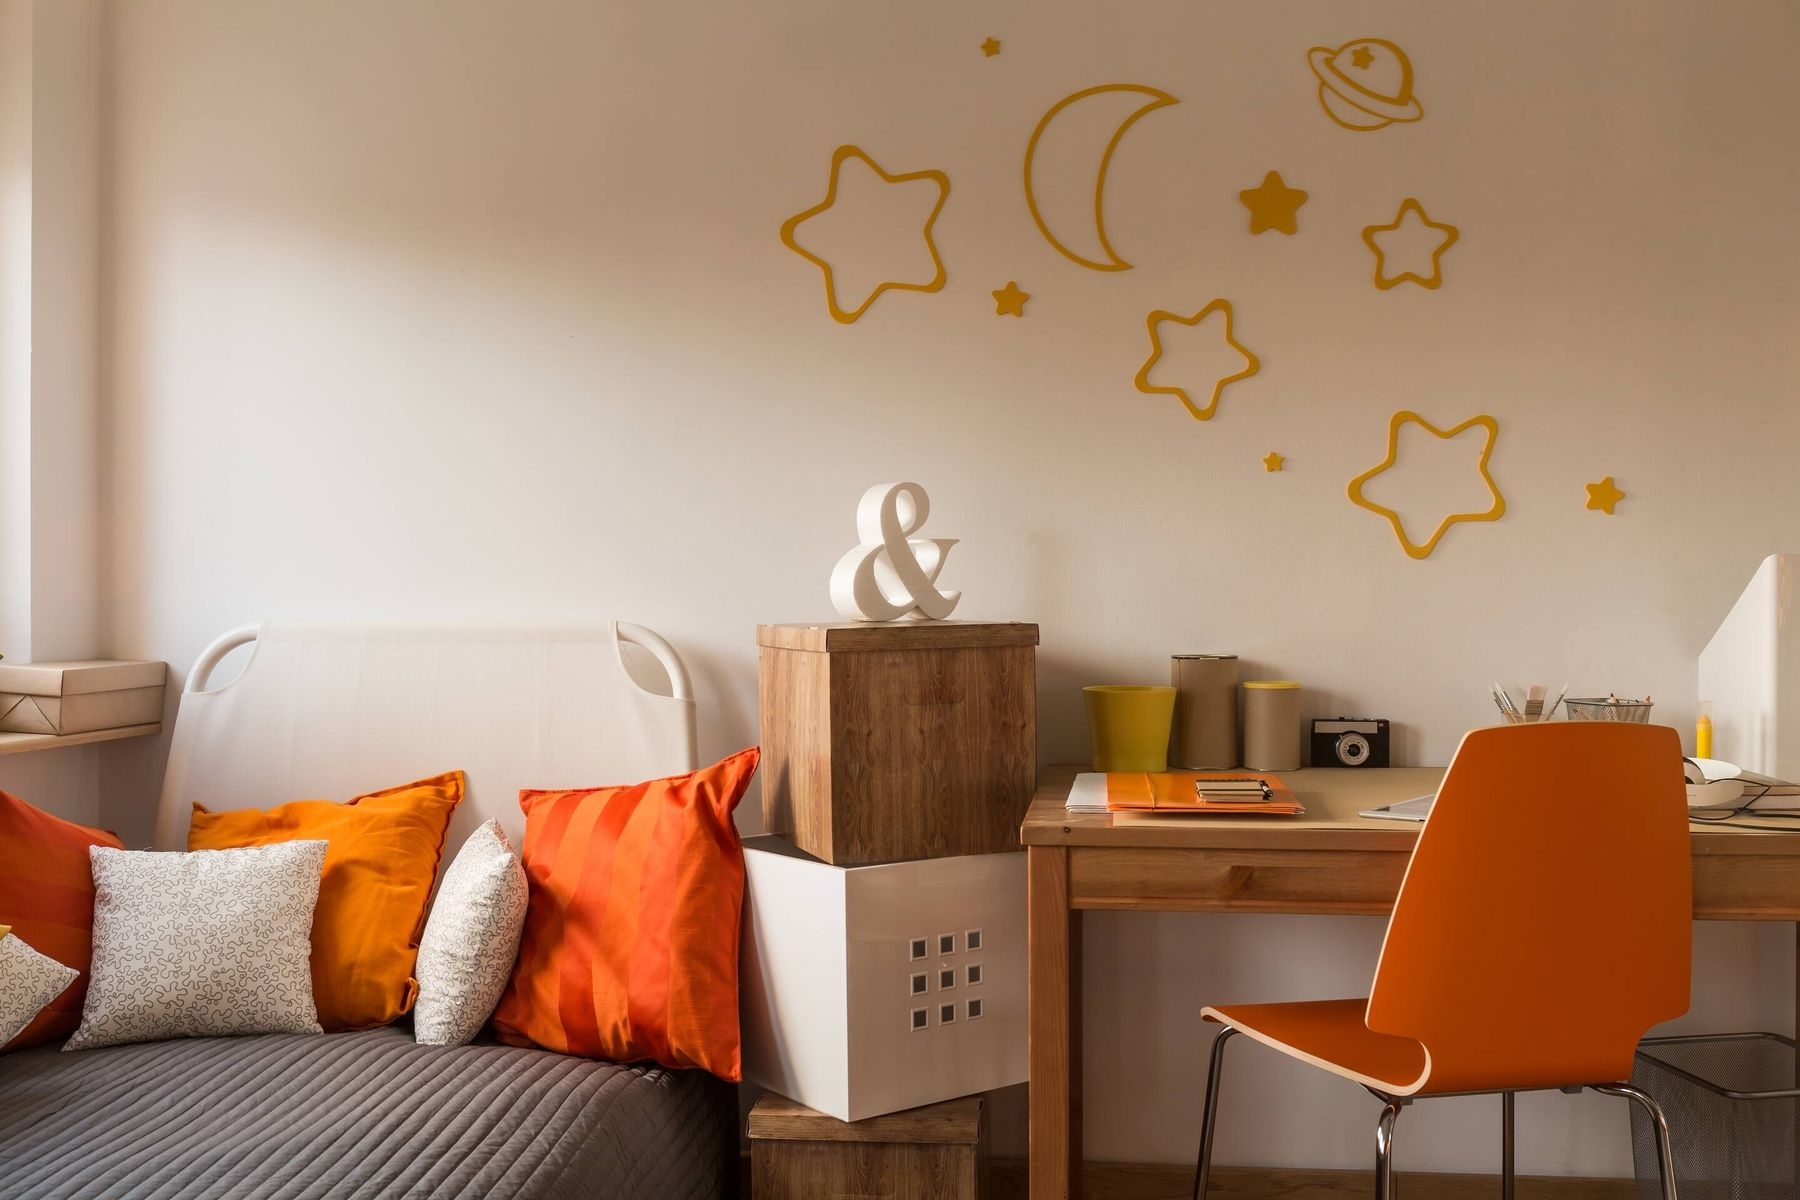 Did Your Child Stain Your Wall with a Permanent Marker? Let's Clean It